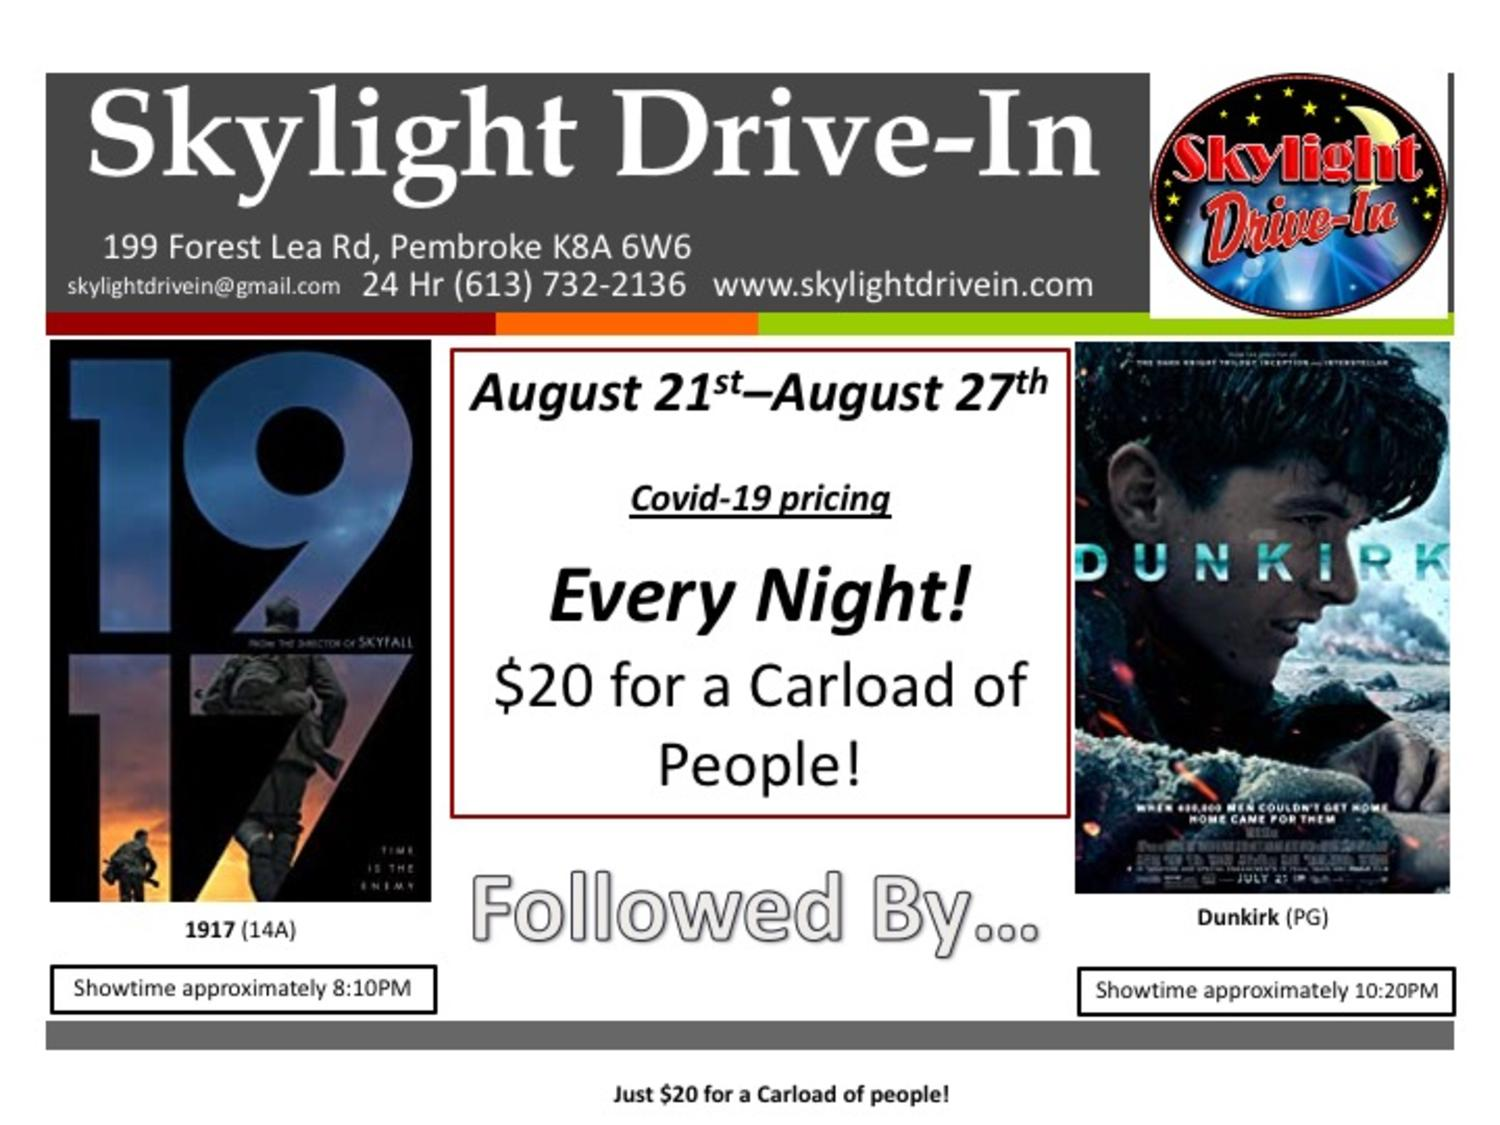 Skylight Drive-In featuring 1917 followed by Dunkirk